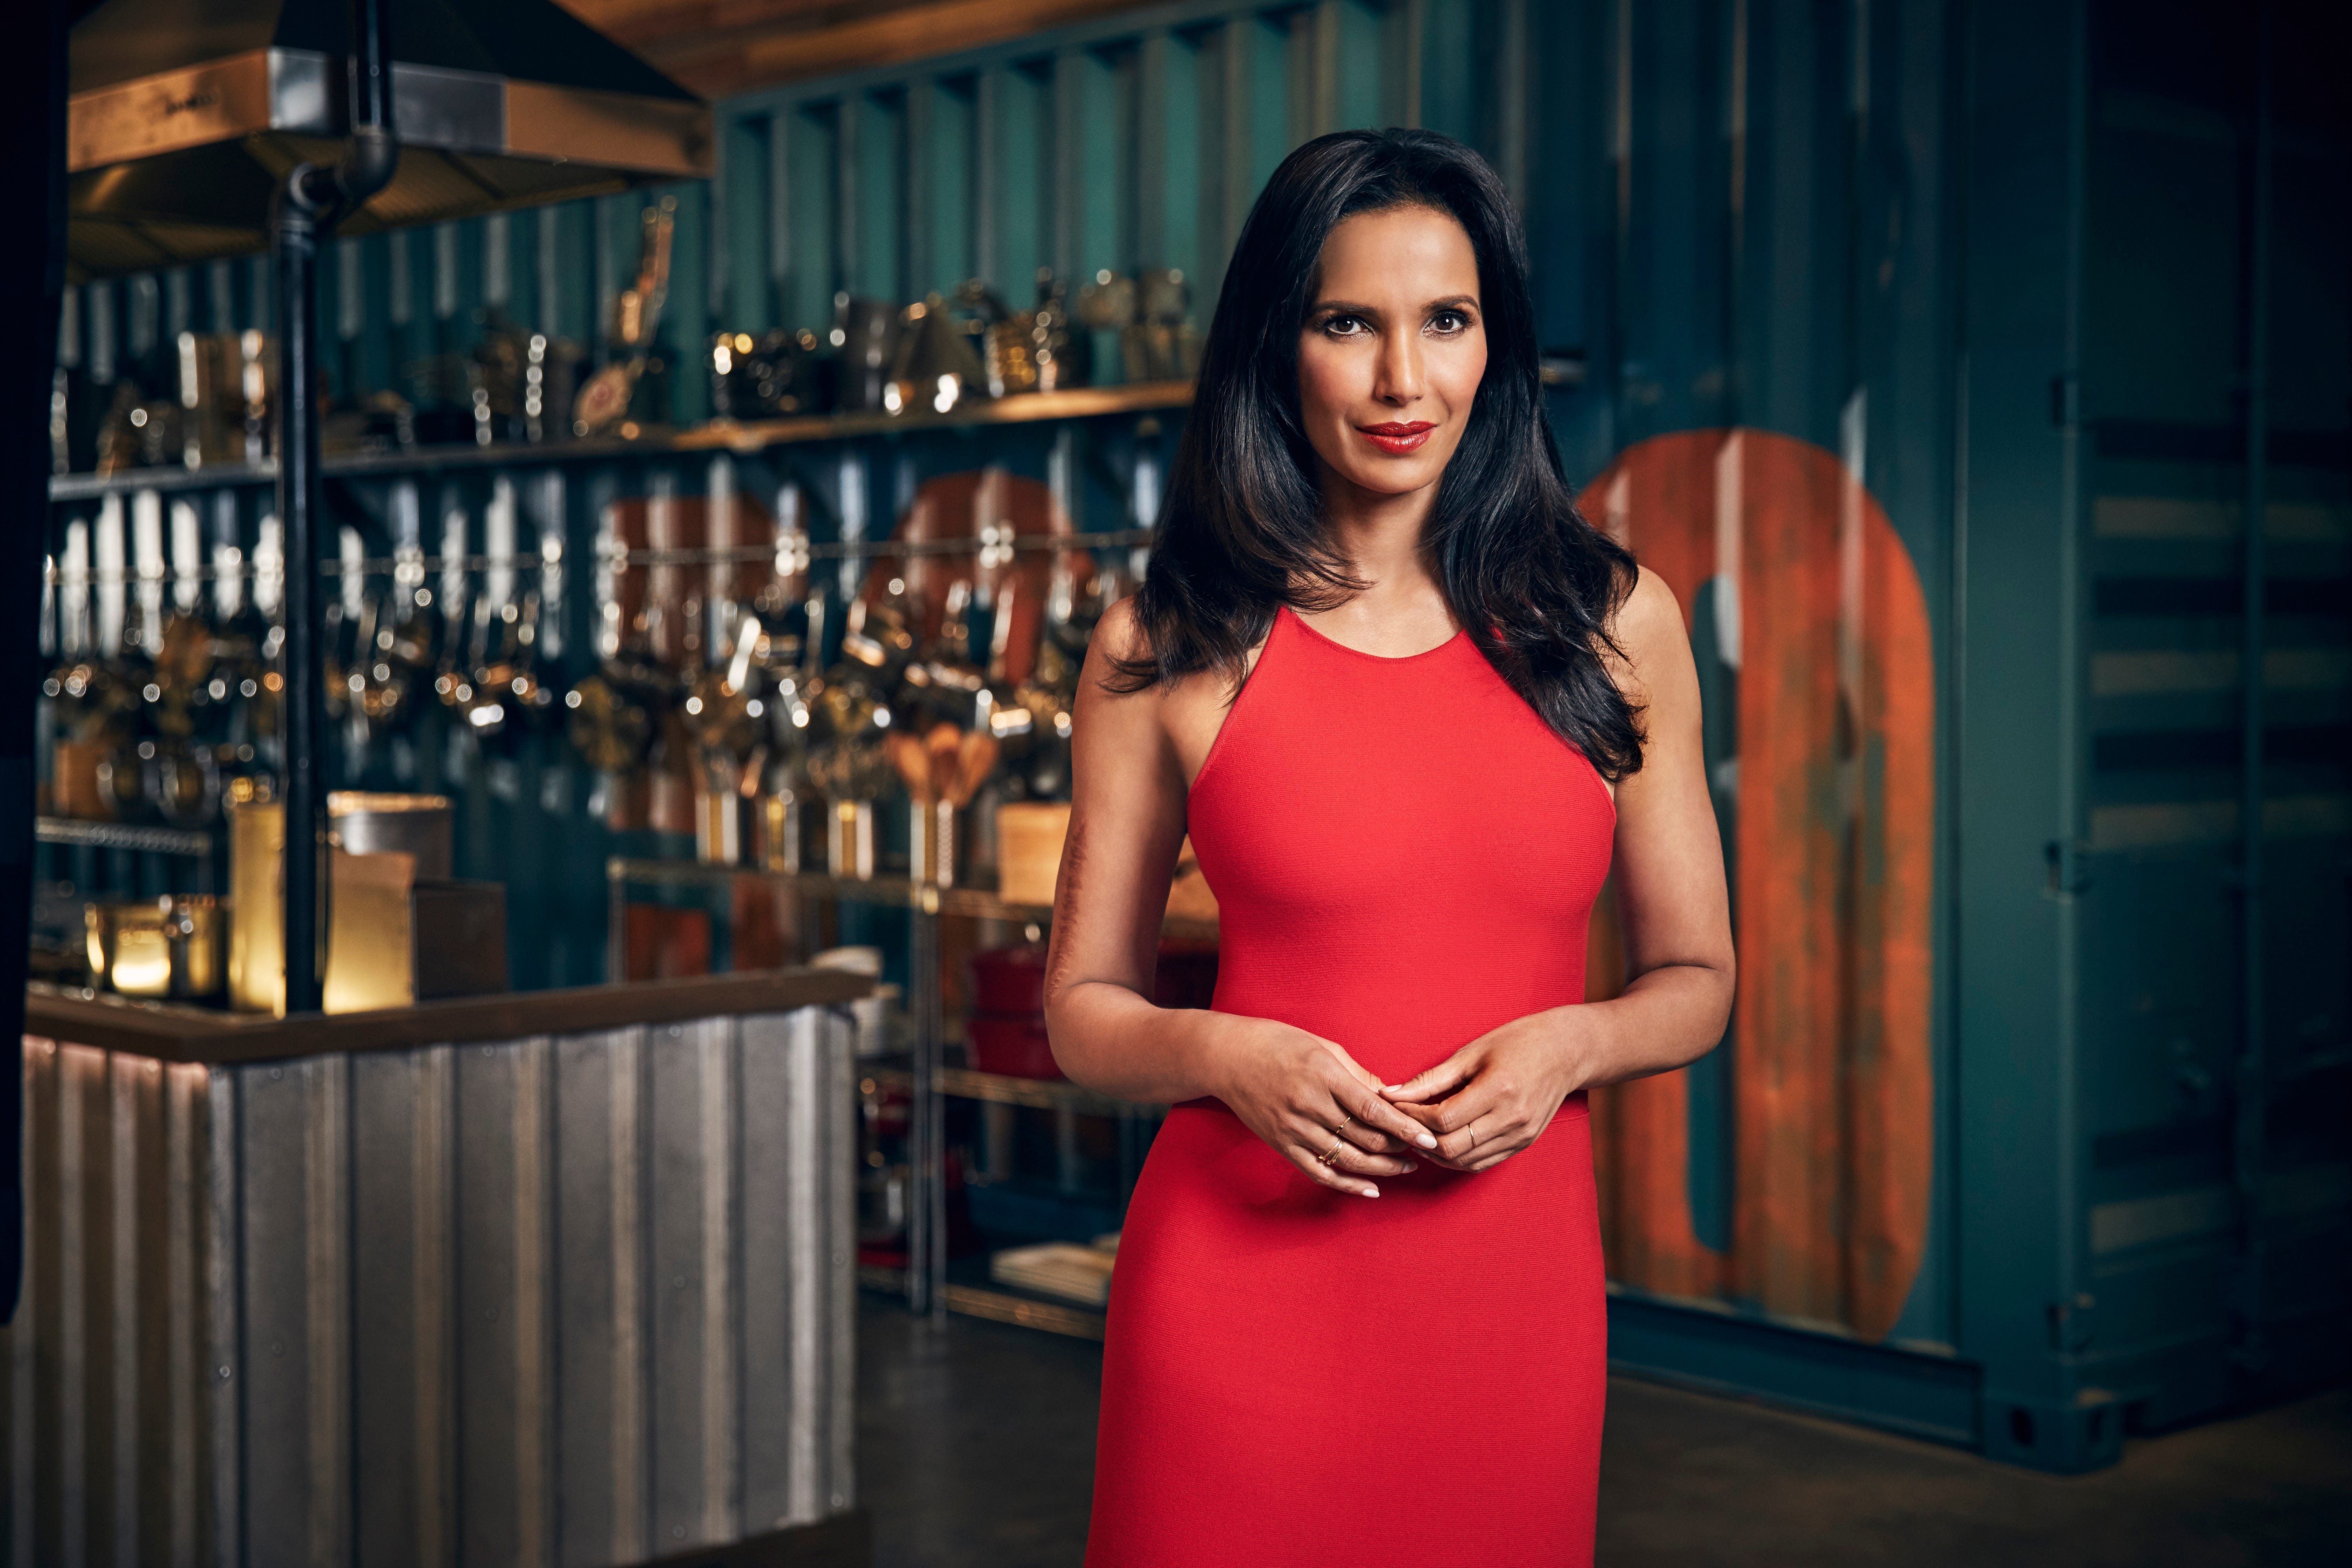 Cj top chef dating